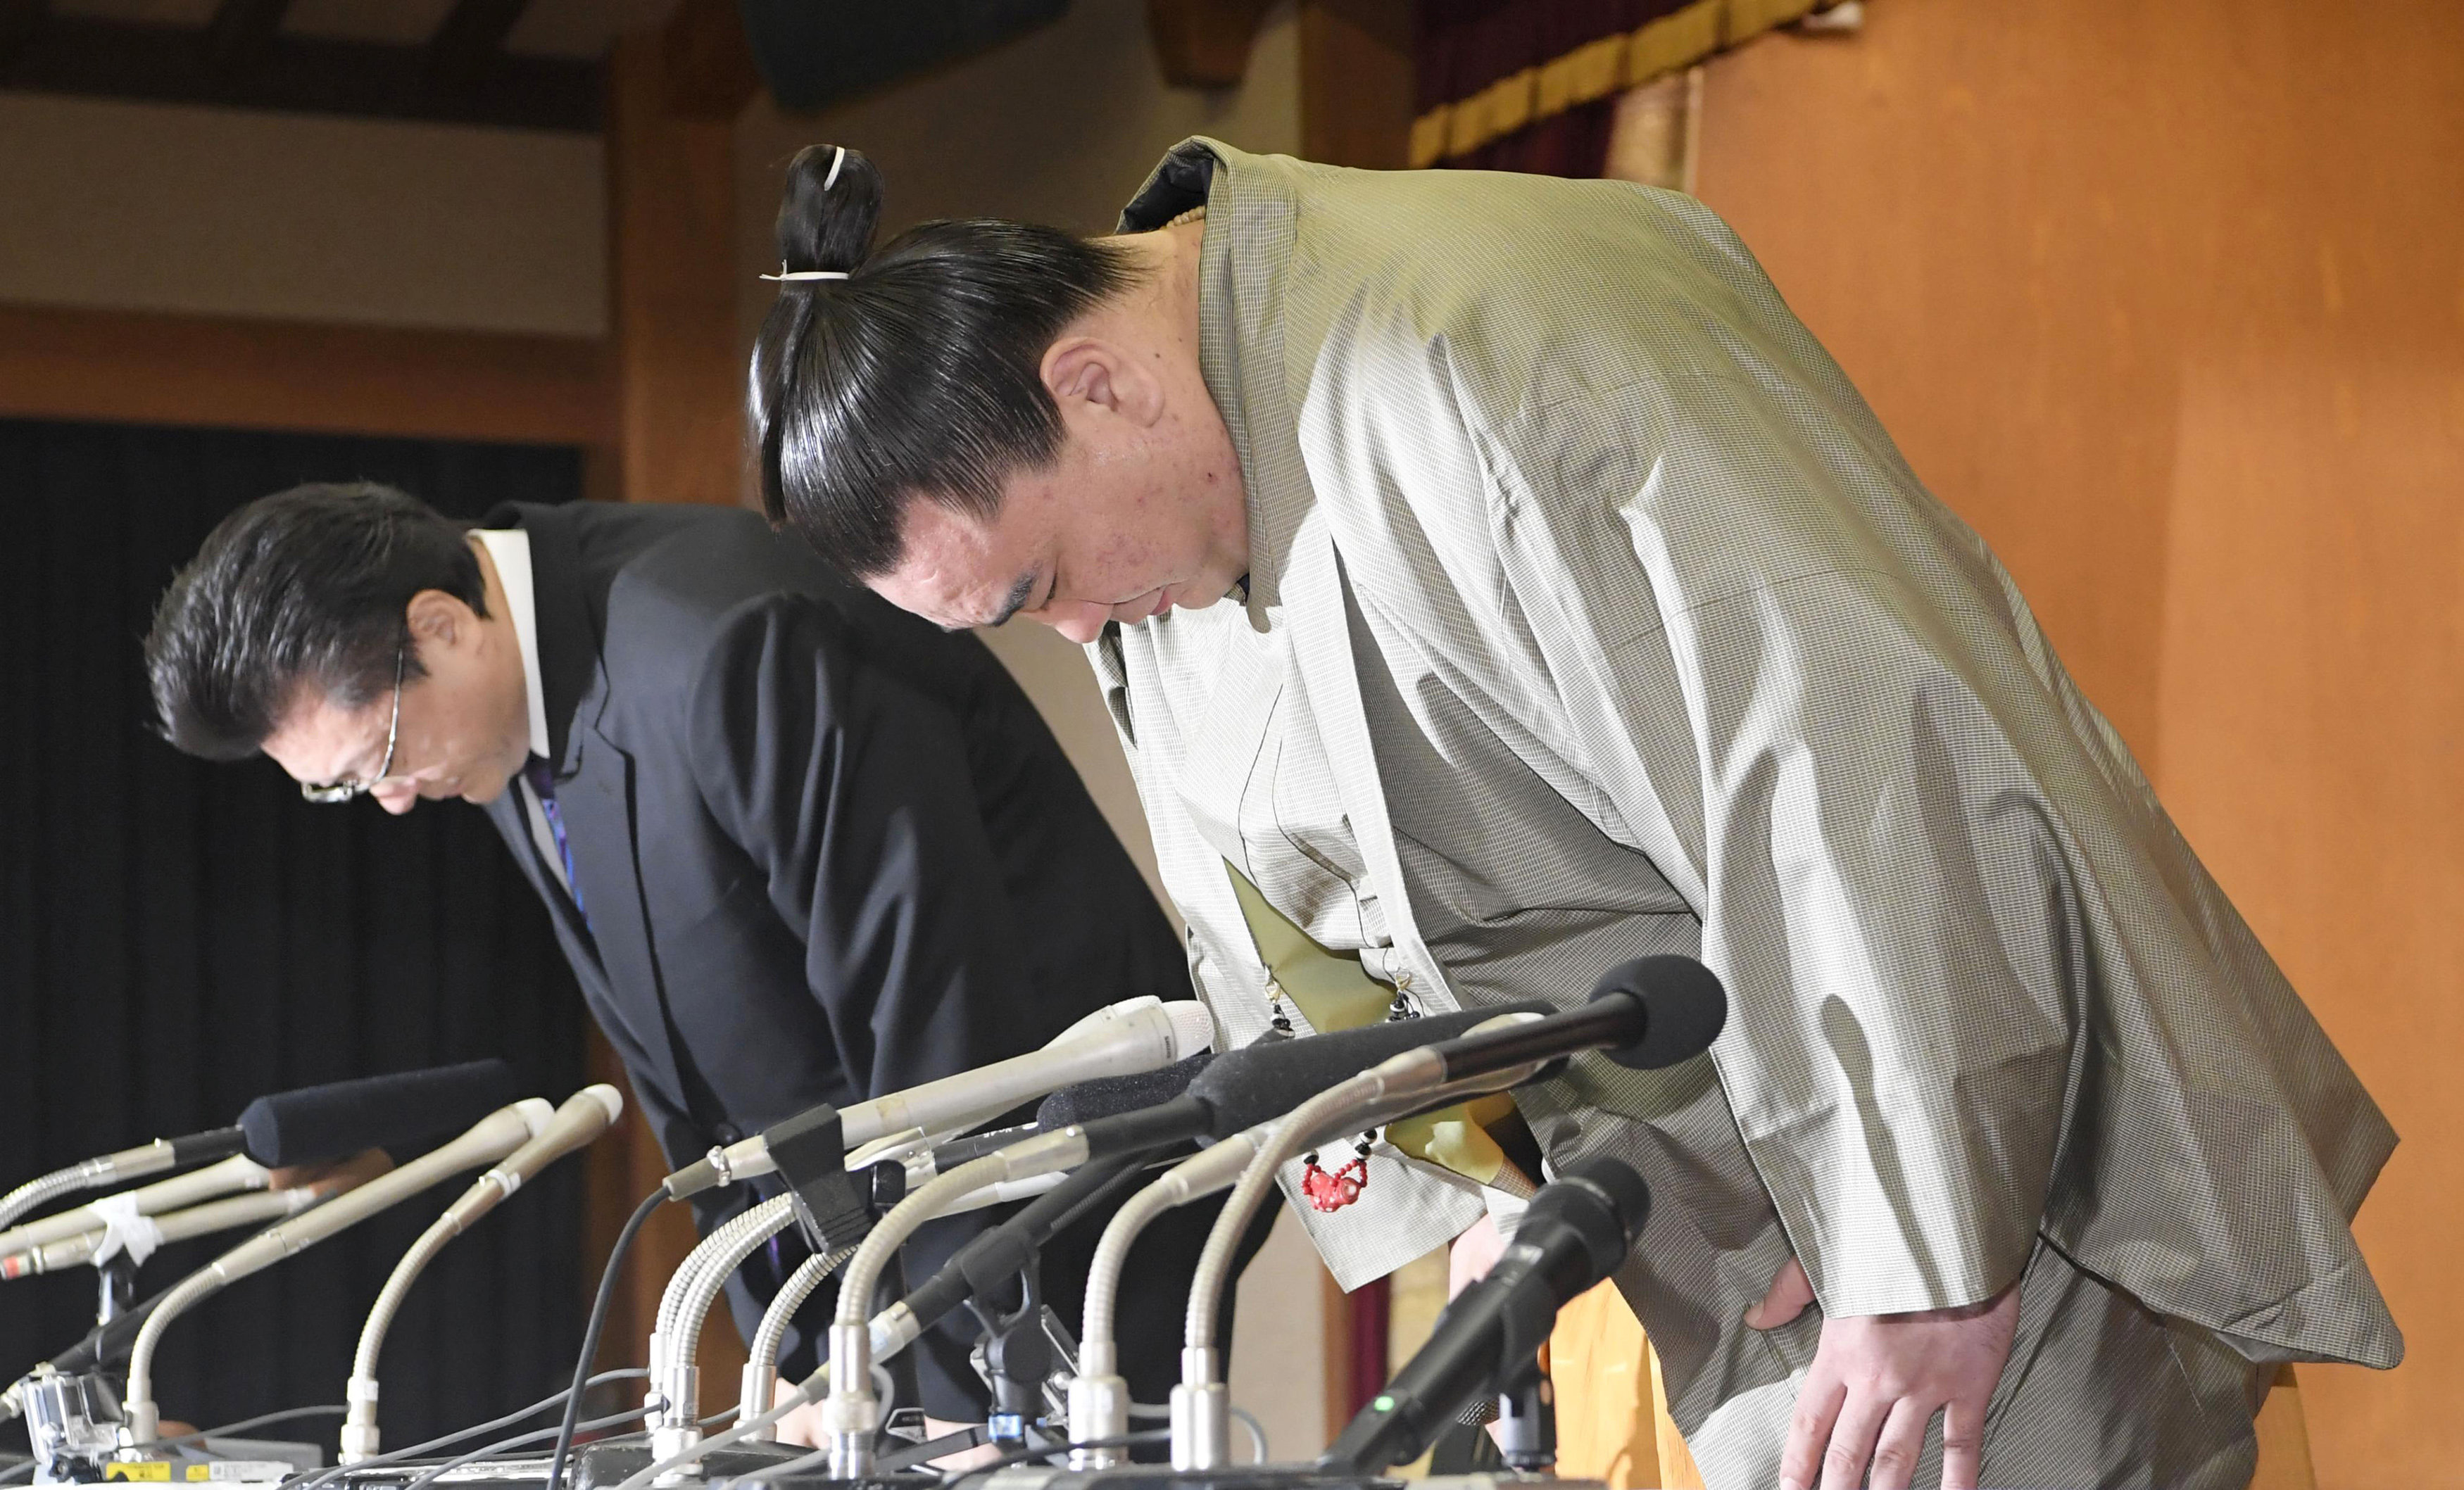 Grand sumo champion retires after brutal attack on rival